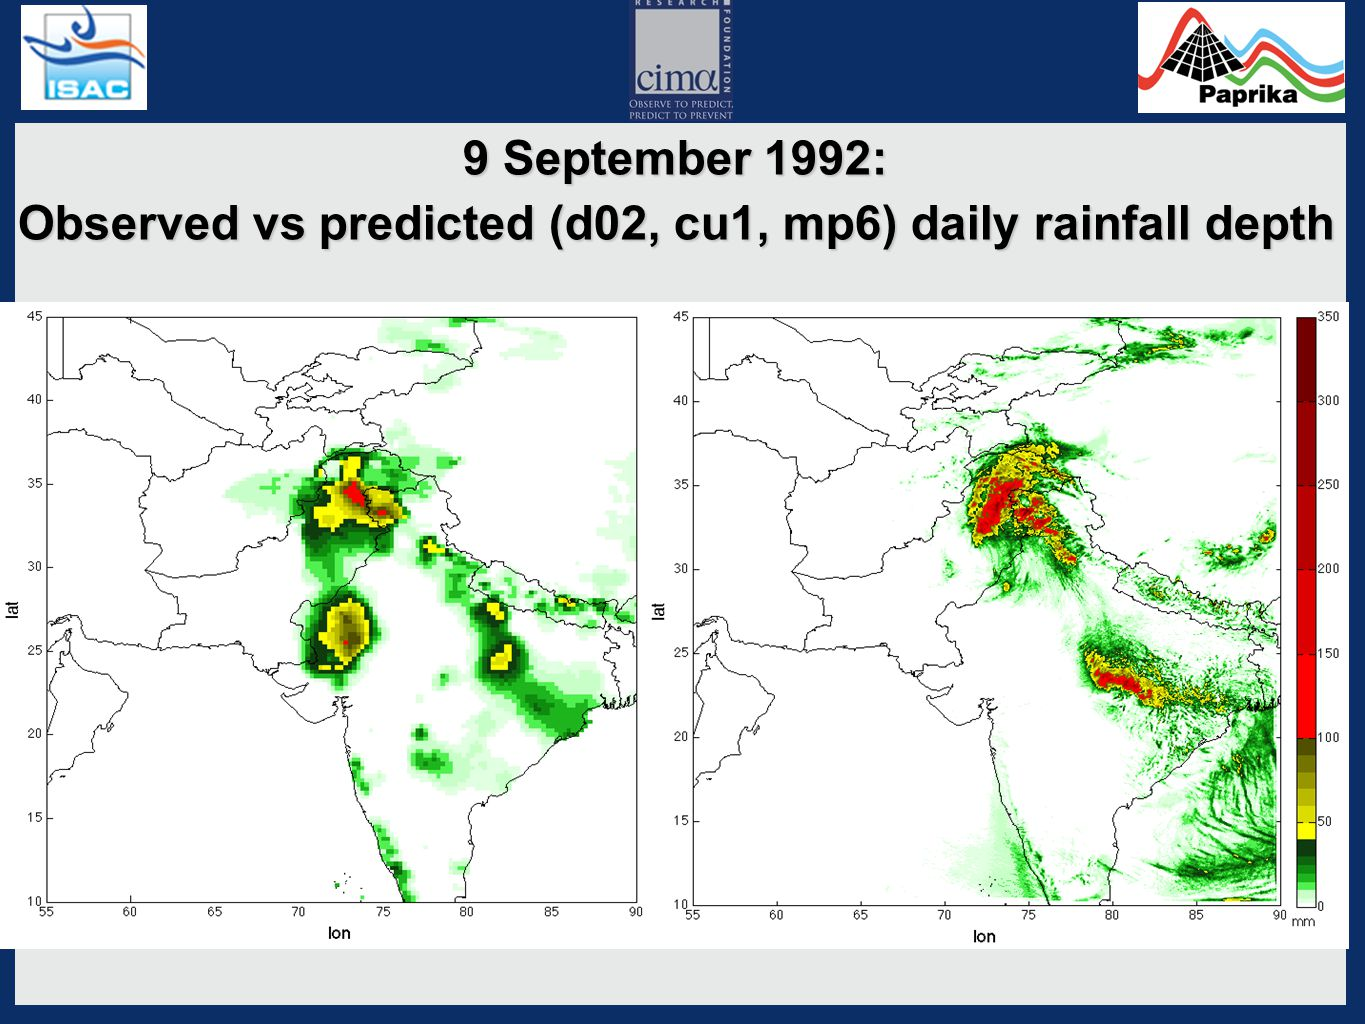 9 September 1992: Observed vs predicted (d02, cu2, mp6) daily rainfall depth